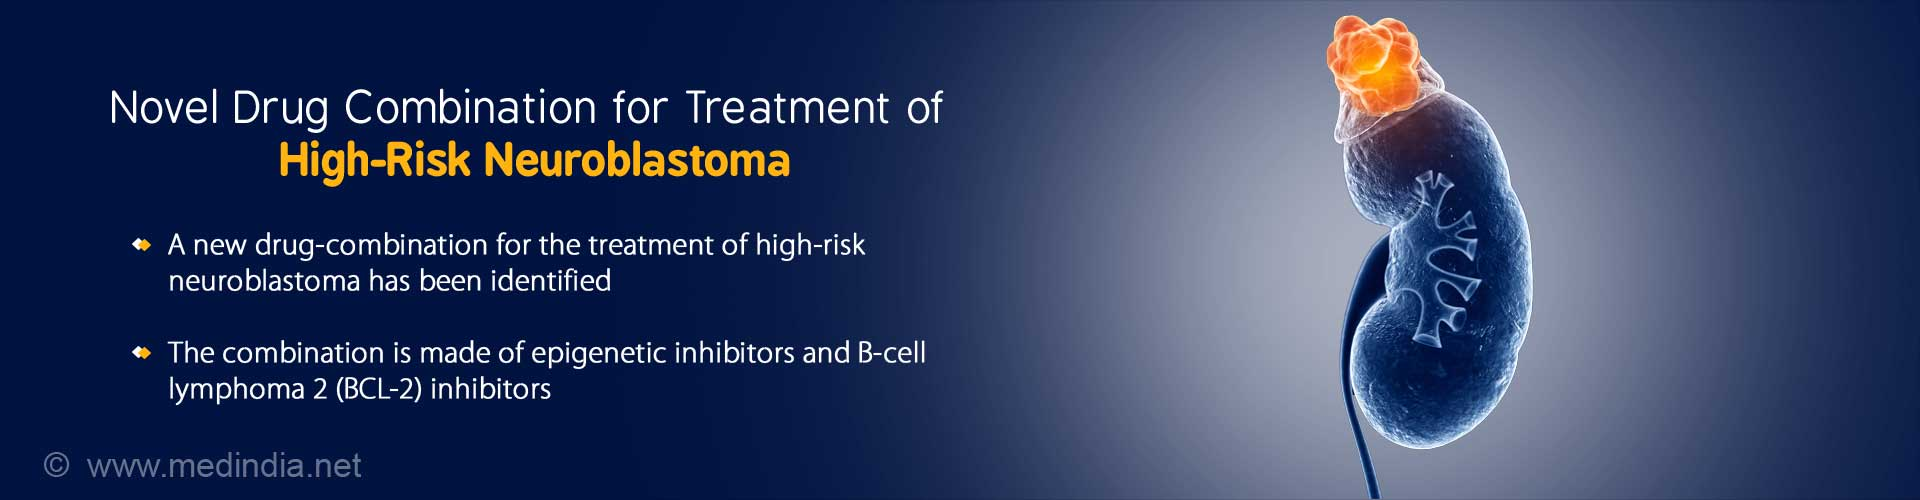 Novel Drug Combination for High-Risk Neuroblastoma. A new drug-combination for the treatment of high-risk neuroblastoma has been identified. The combination is made of epigenetic inhibitors and B-cell lymphoma 2 (BCL-2) inhibitors.